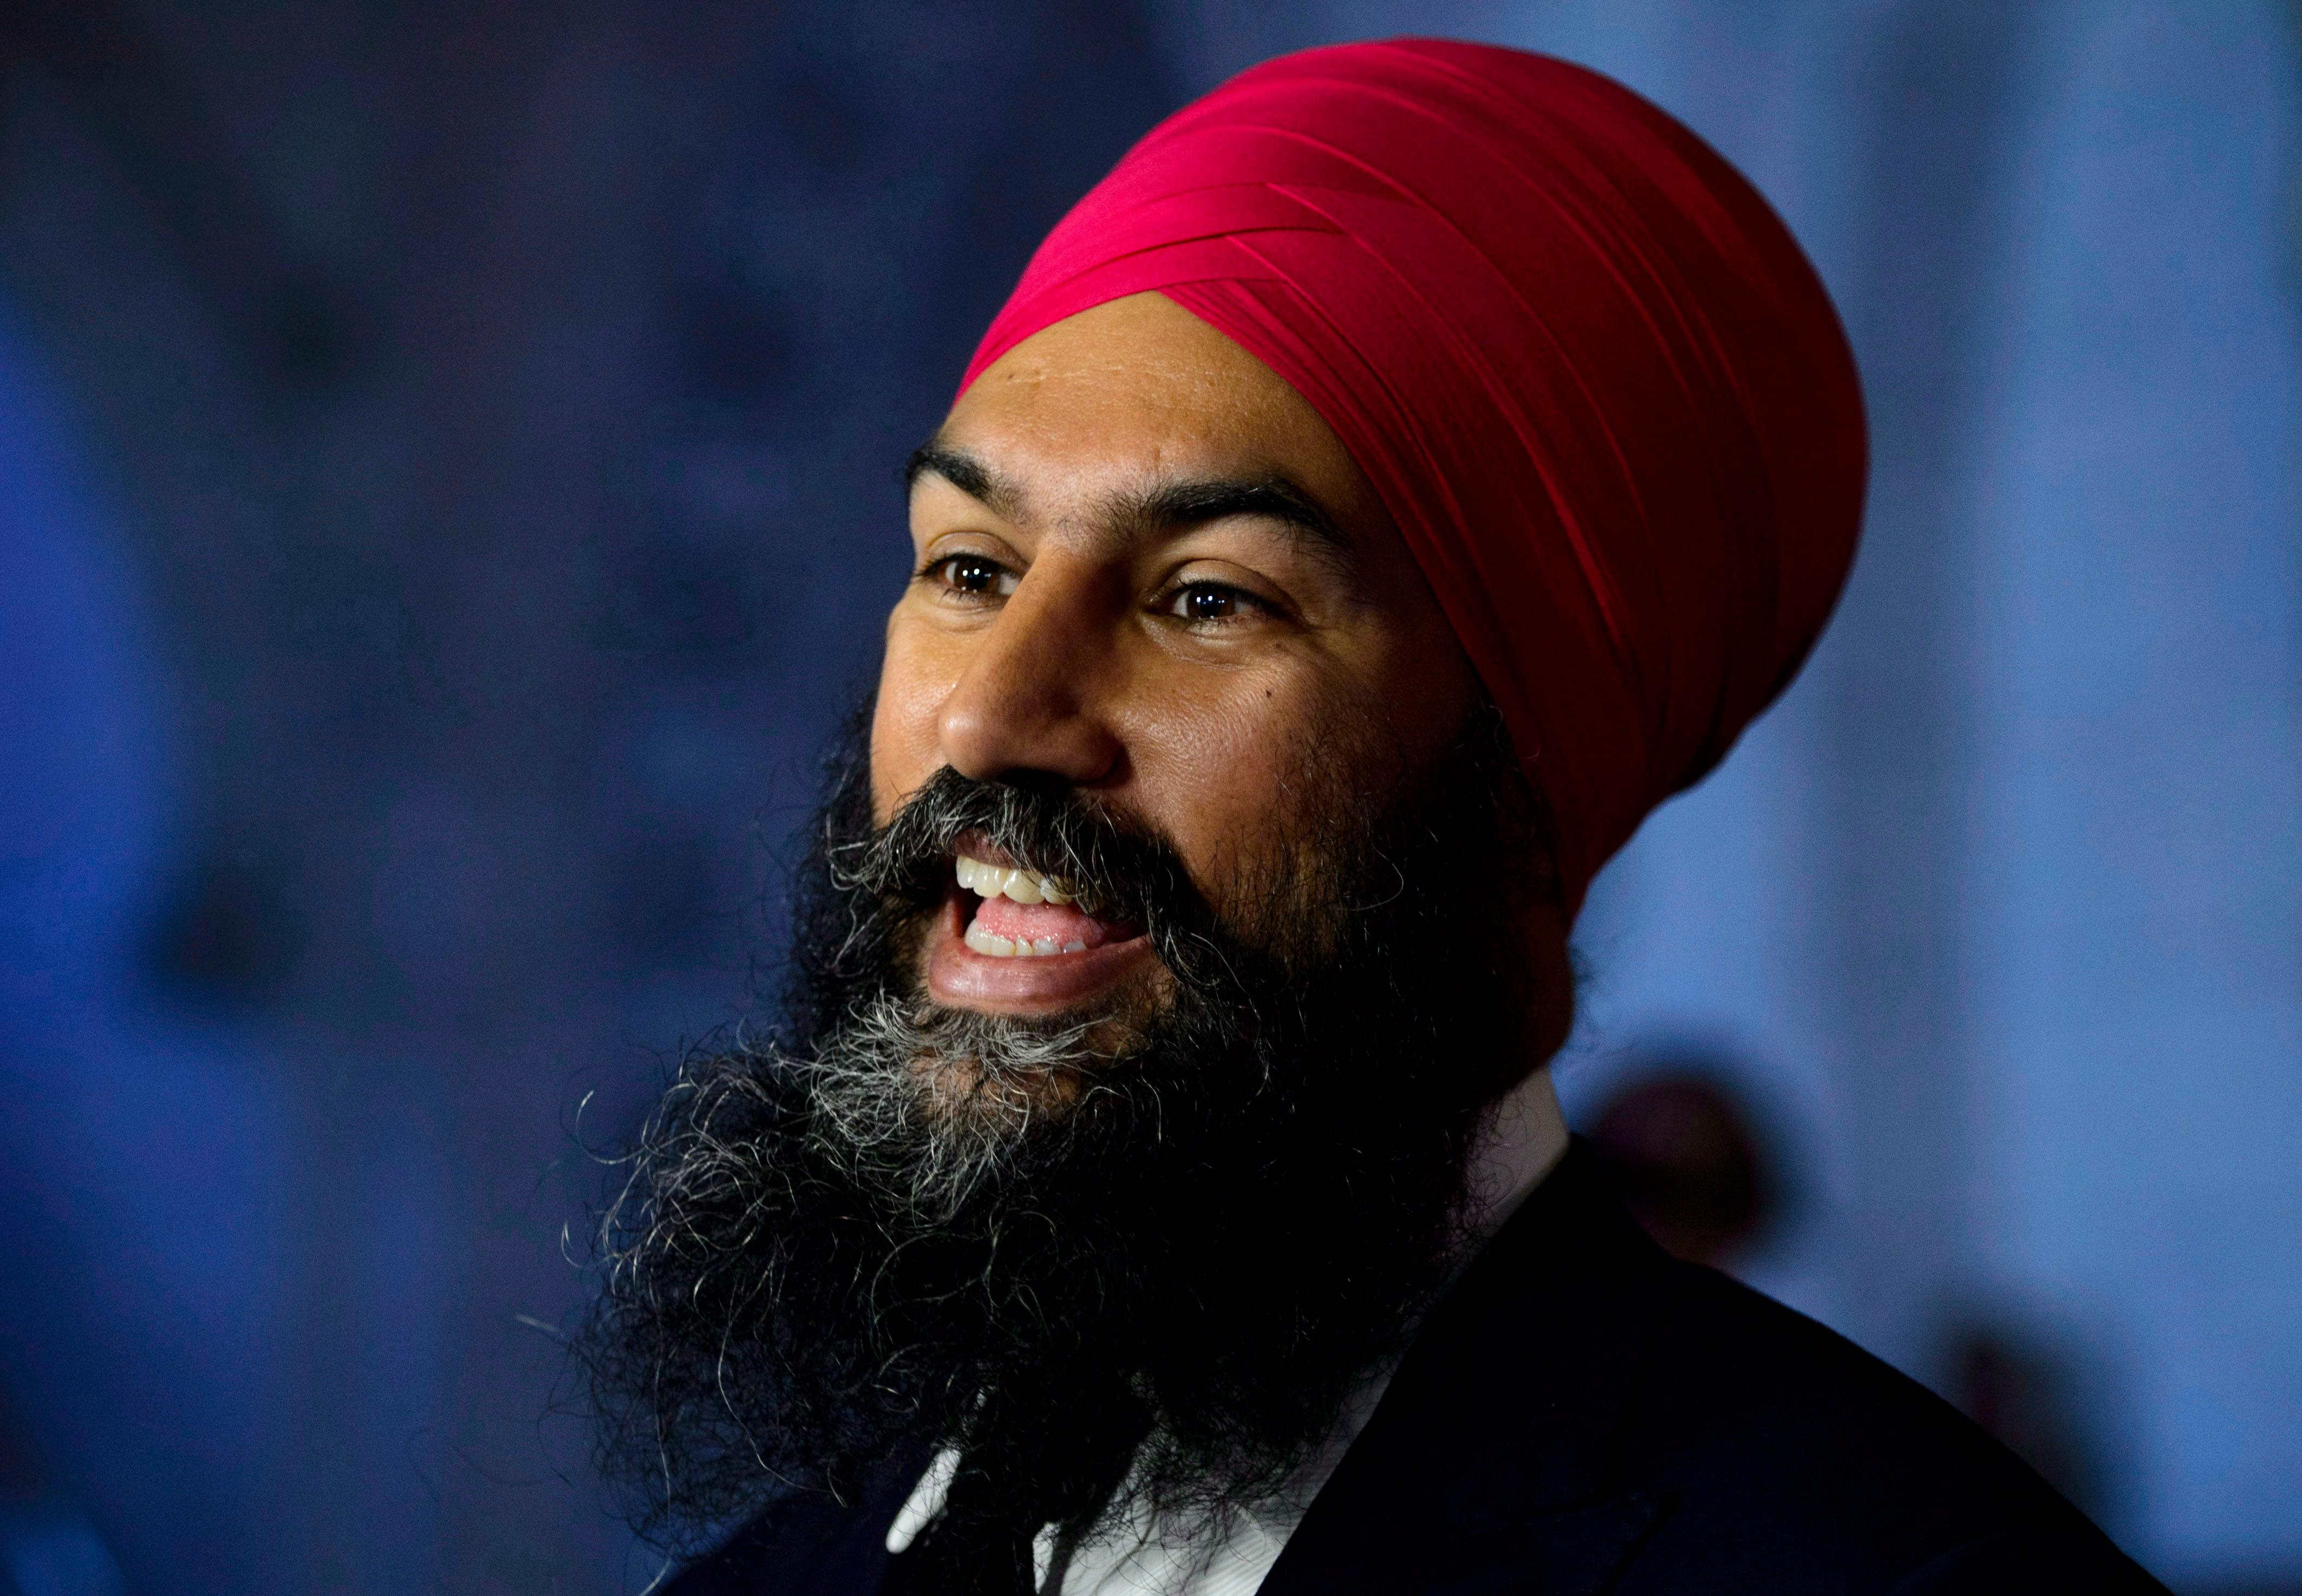 Jagmeet Singh Joins HuffPost Canada's 'Backbenchers' To Talk About His Big Byelection | HuffPost Canada